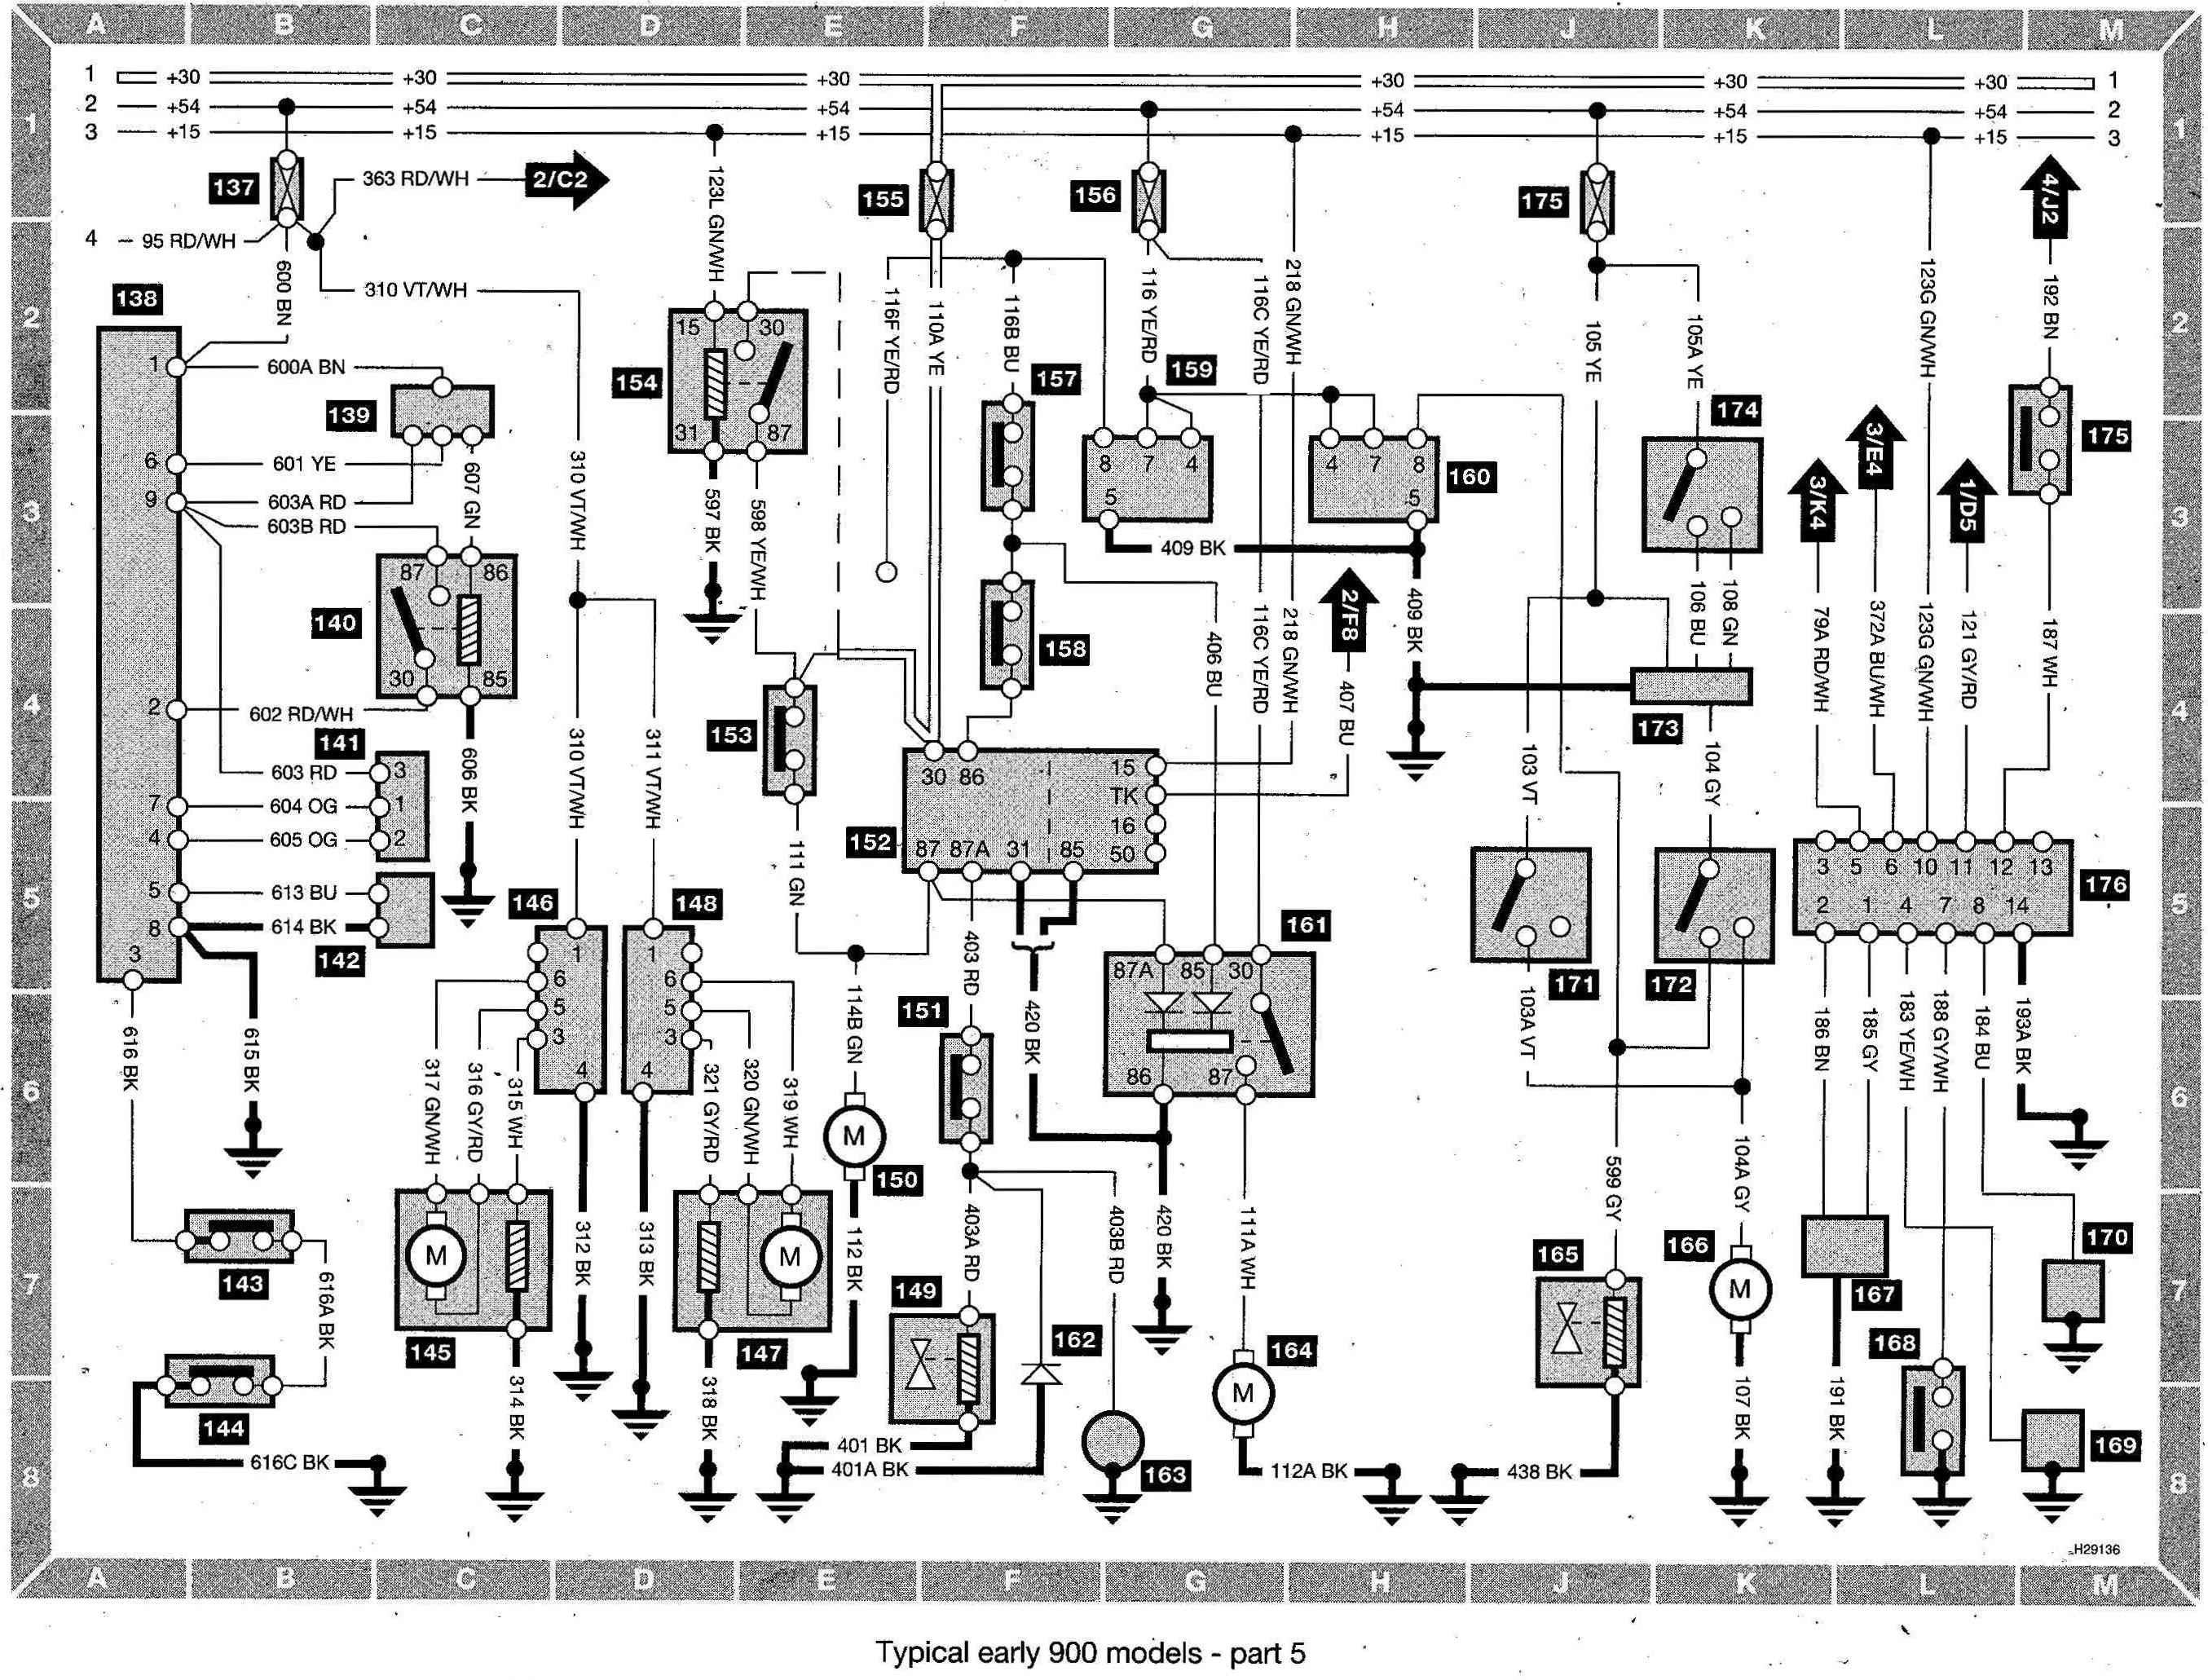 2009 Scion Xb Fuse Diagram